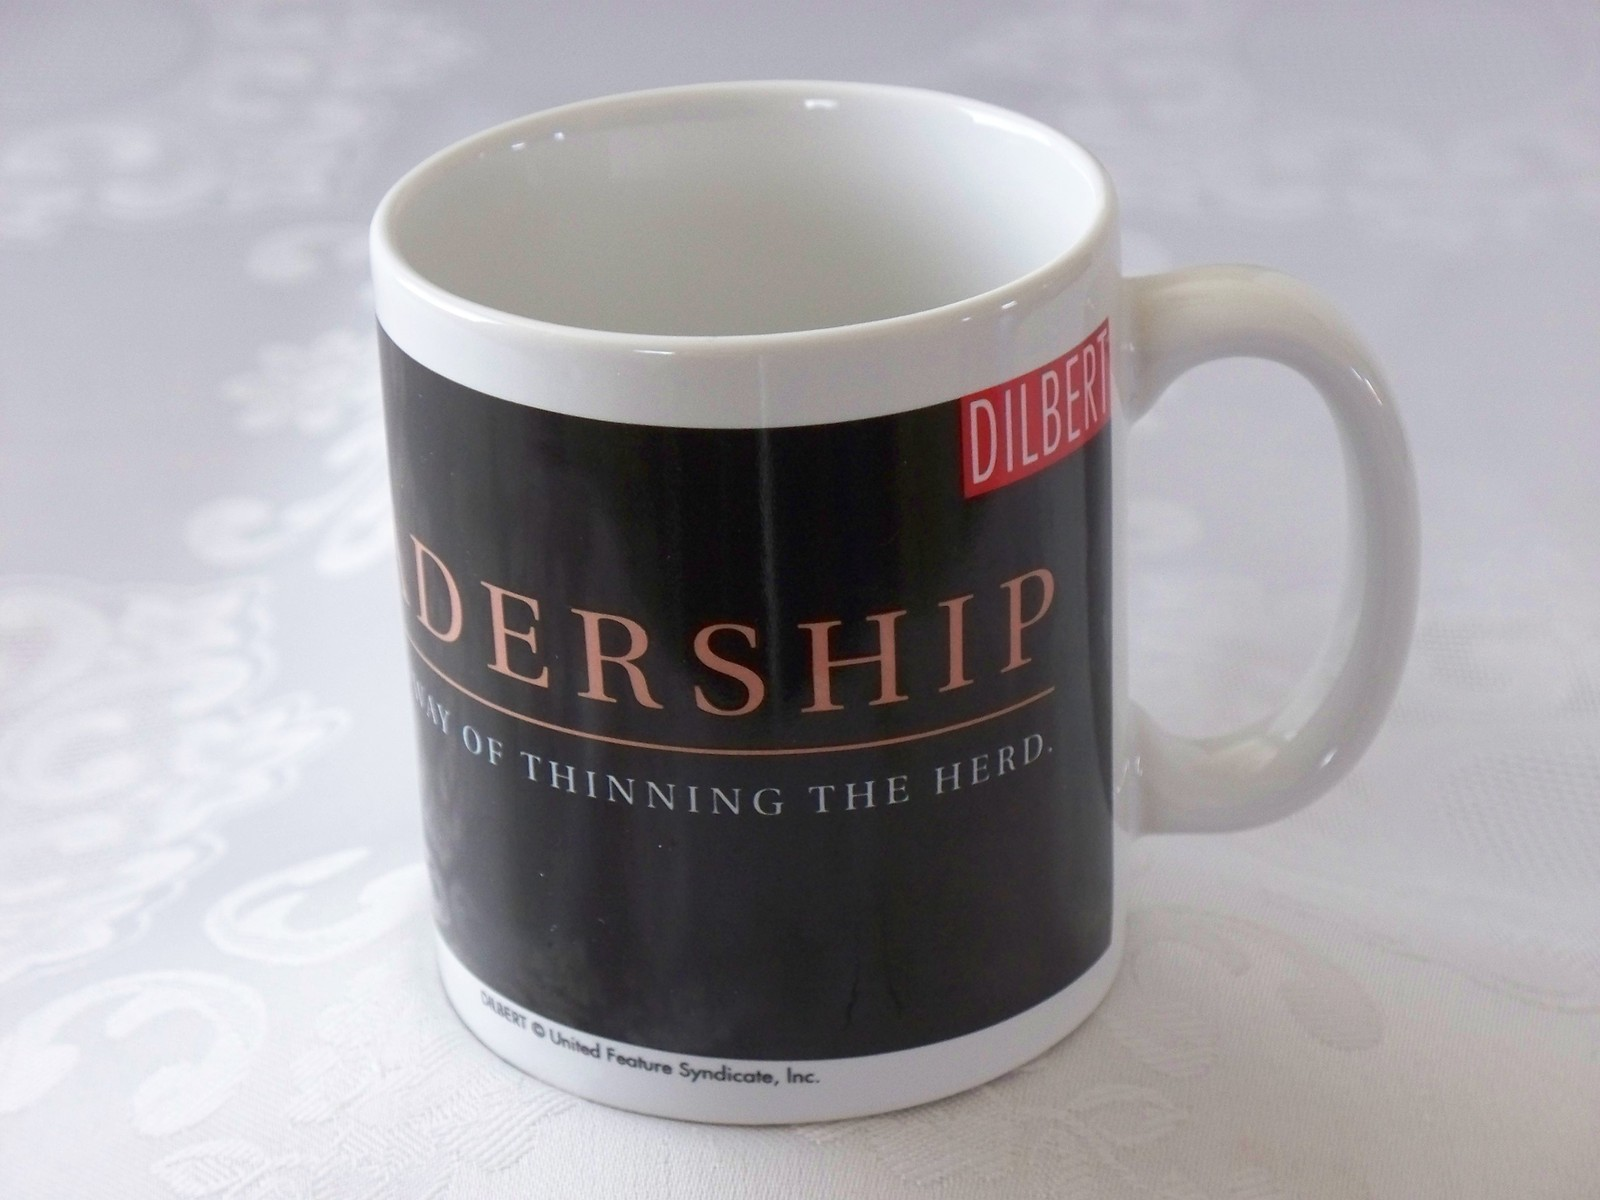 Dilbert Leadership Thinning Of The Herd 12 Oz Coffee Mug